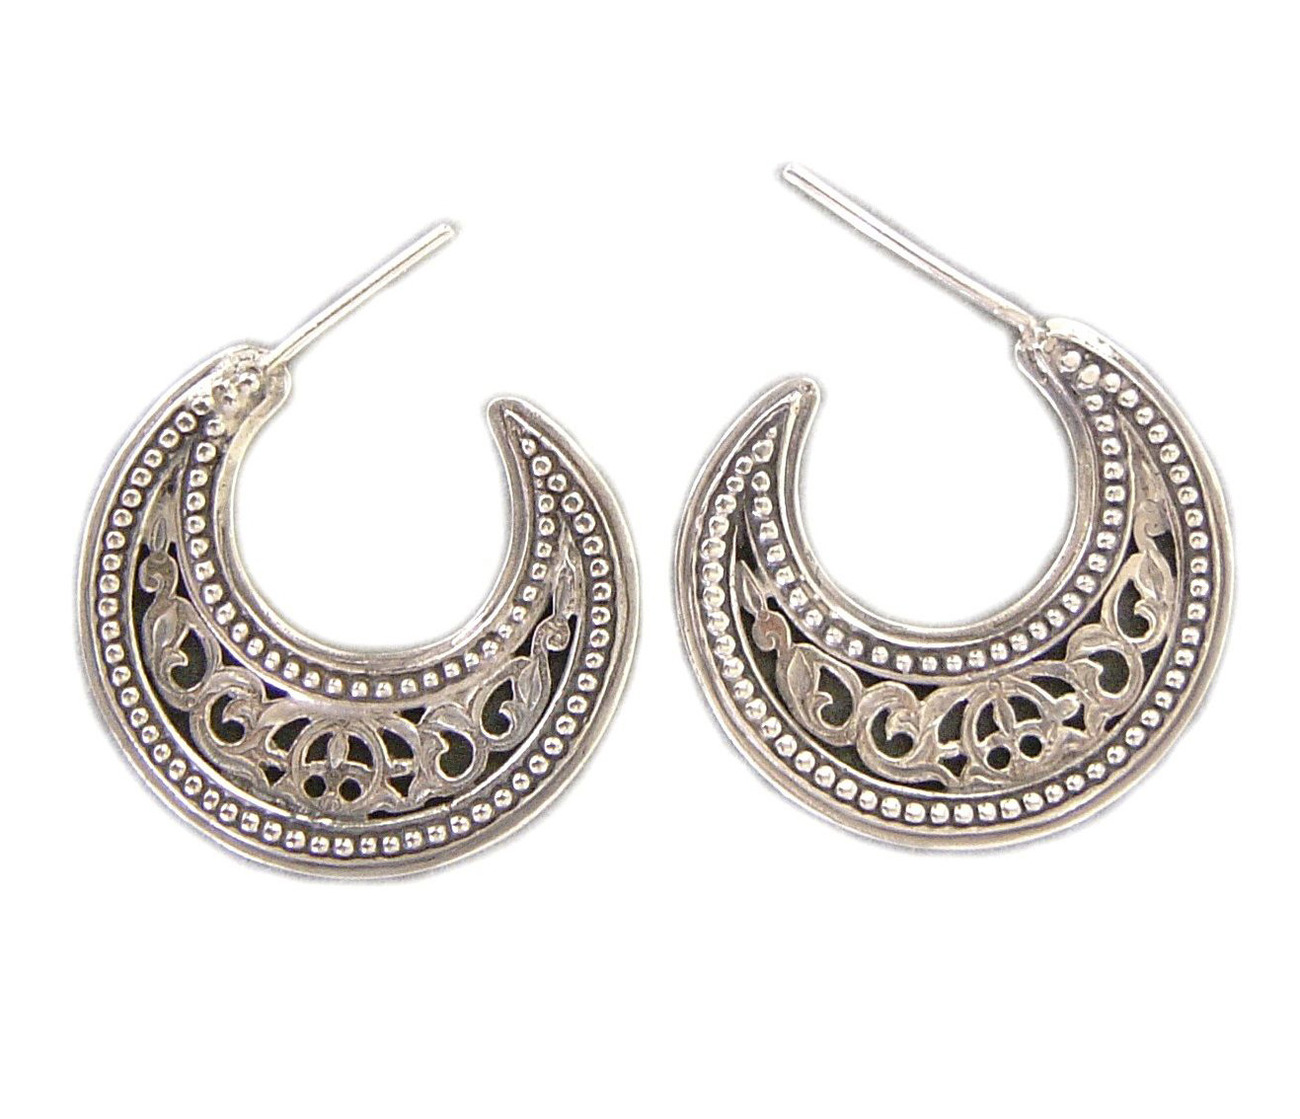 Primary image for Gerochristo 1162 - Sterling Silver Medieval-Byzantine Crescent Earrings - S